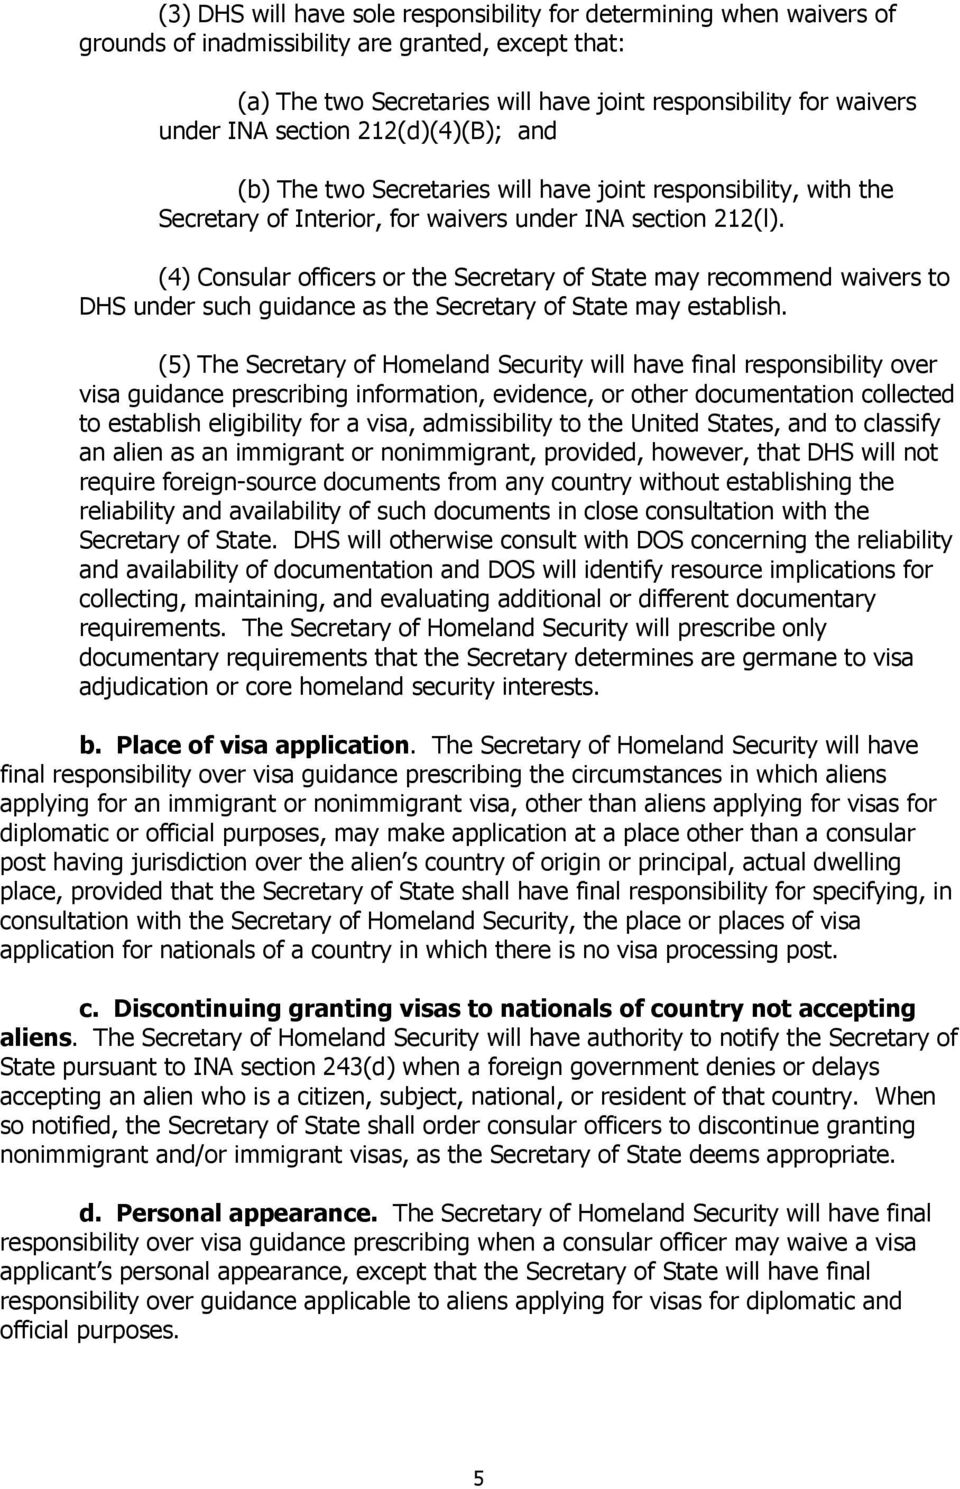 (4) Consular officers or the Secretary of State may recommend waivers to DHS under such guidance as the Secretary of State may establish.